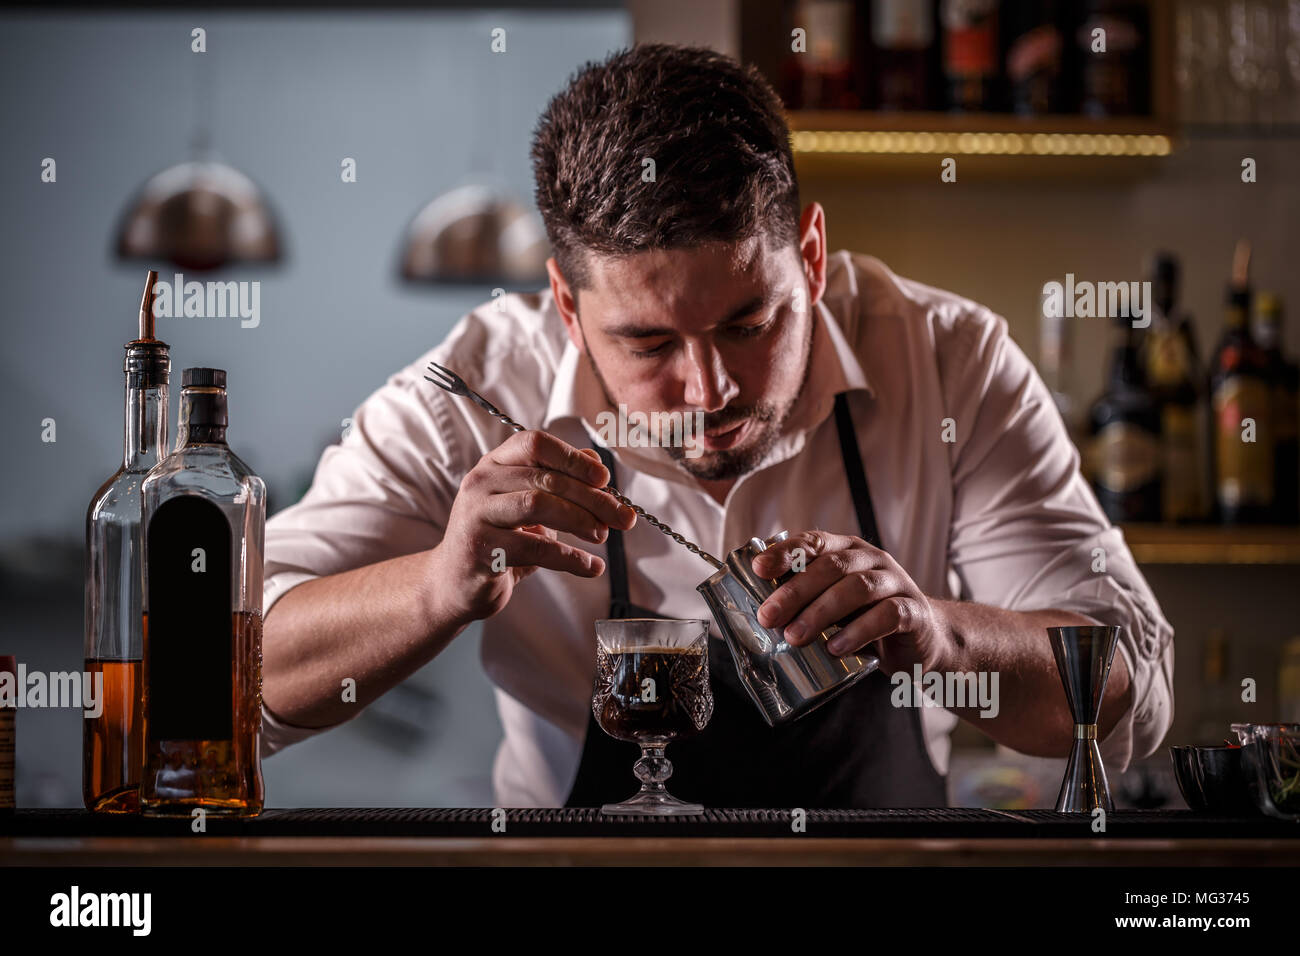 Bartender decorated coffee cocktail with milk foam - Stock Image